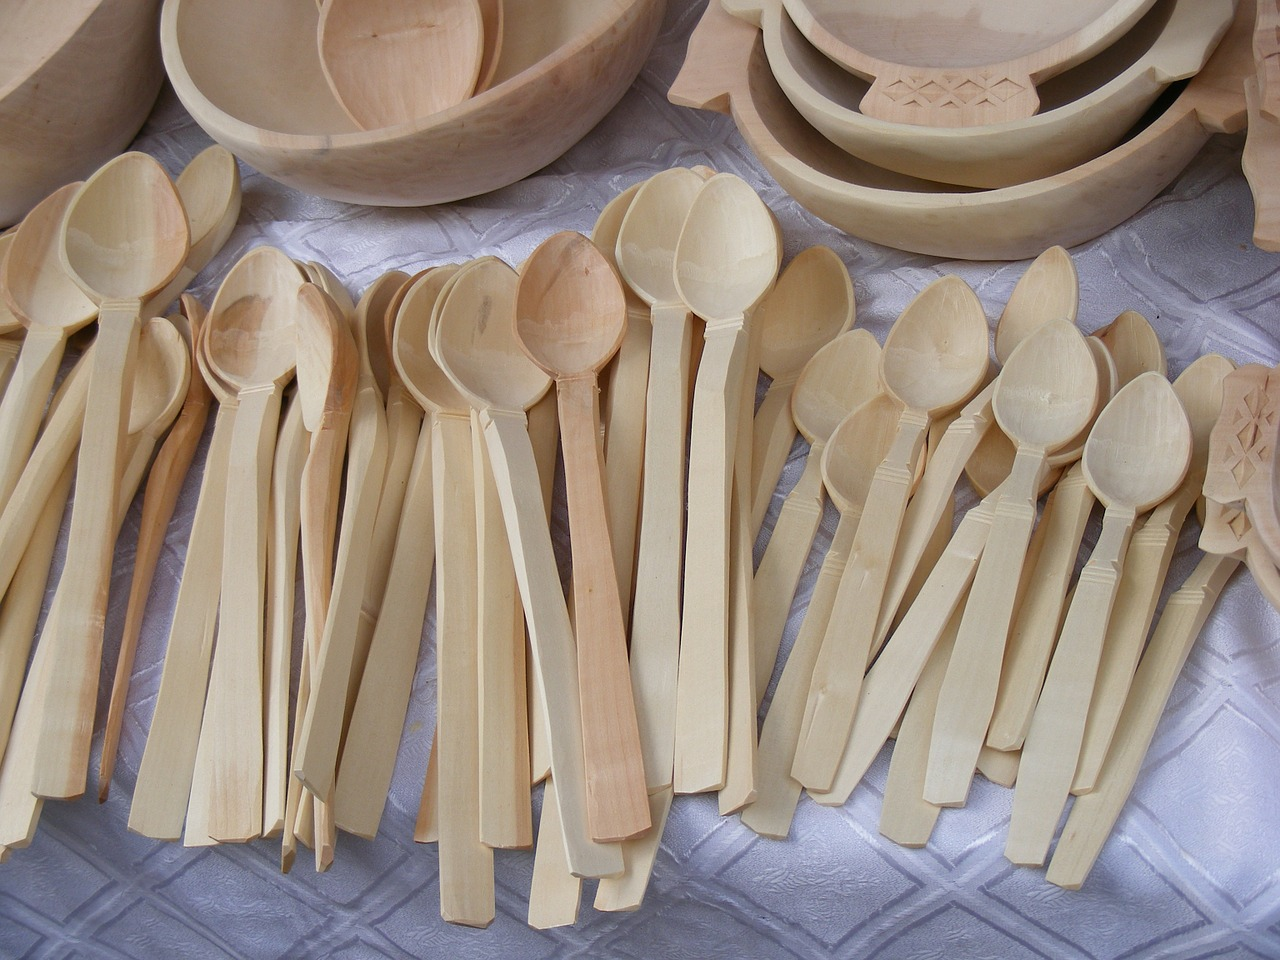 spoons dishes wood free photo